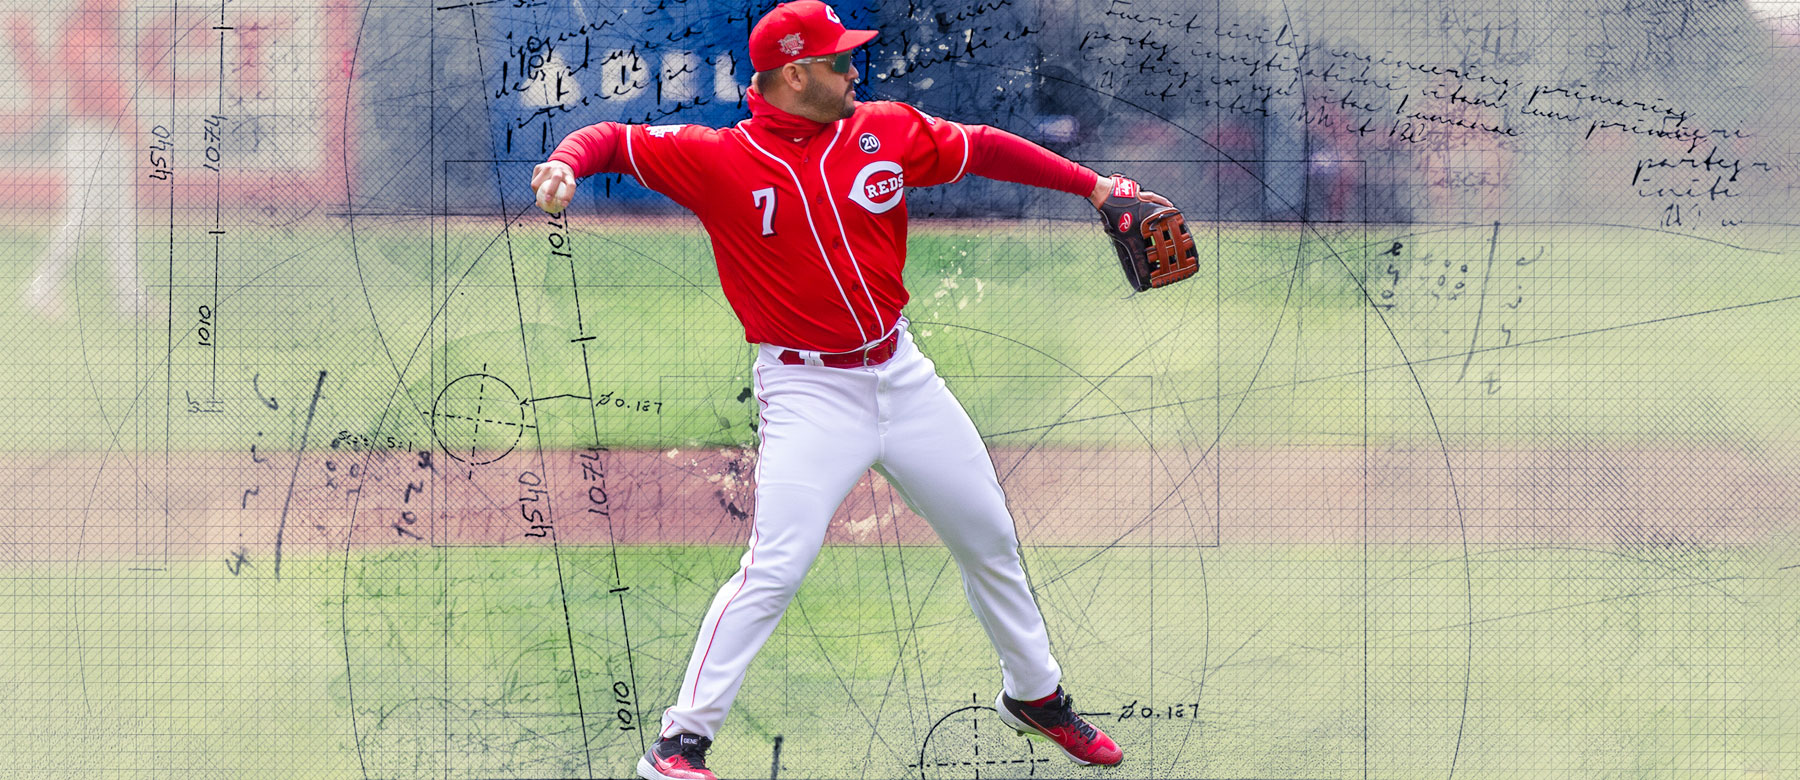 New Statcast Defensive Data: How do the Reds stack up? - Redleg Nation